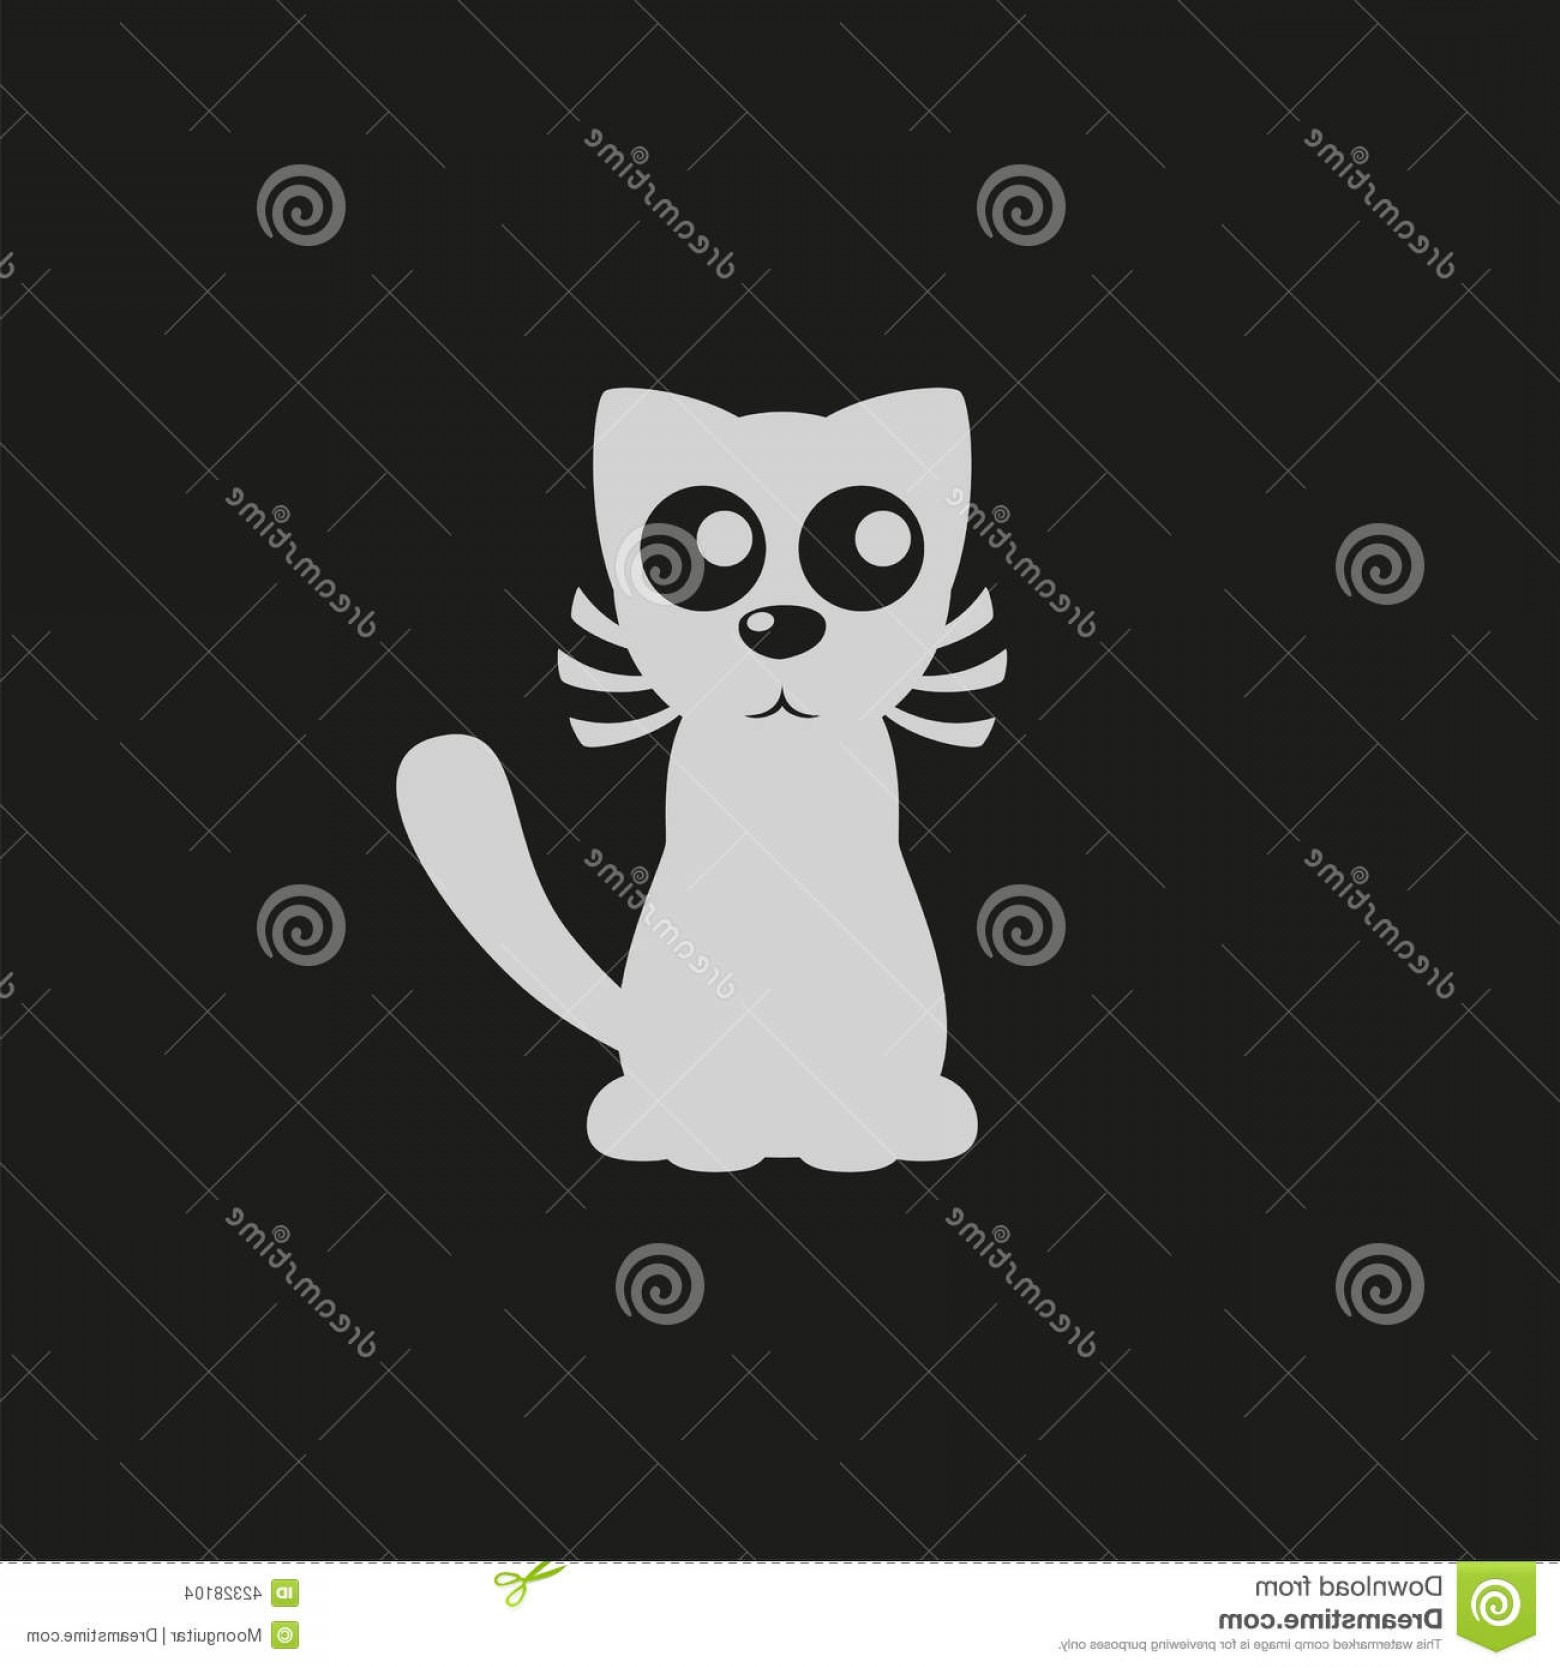 Malee Cat Head Silhouette Vector: Stock Illustration Pet Shop Logo Cartoon Cat Sign Cat Silhouette Vector Illustration Image